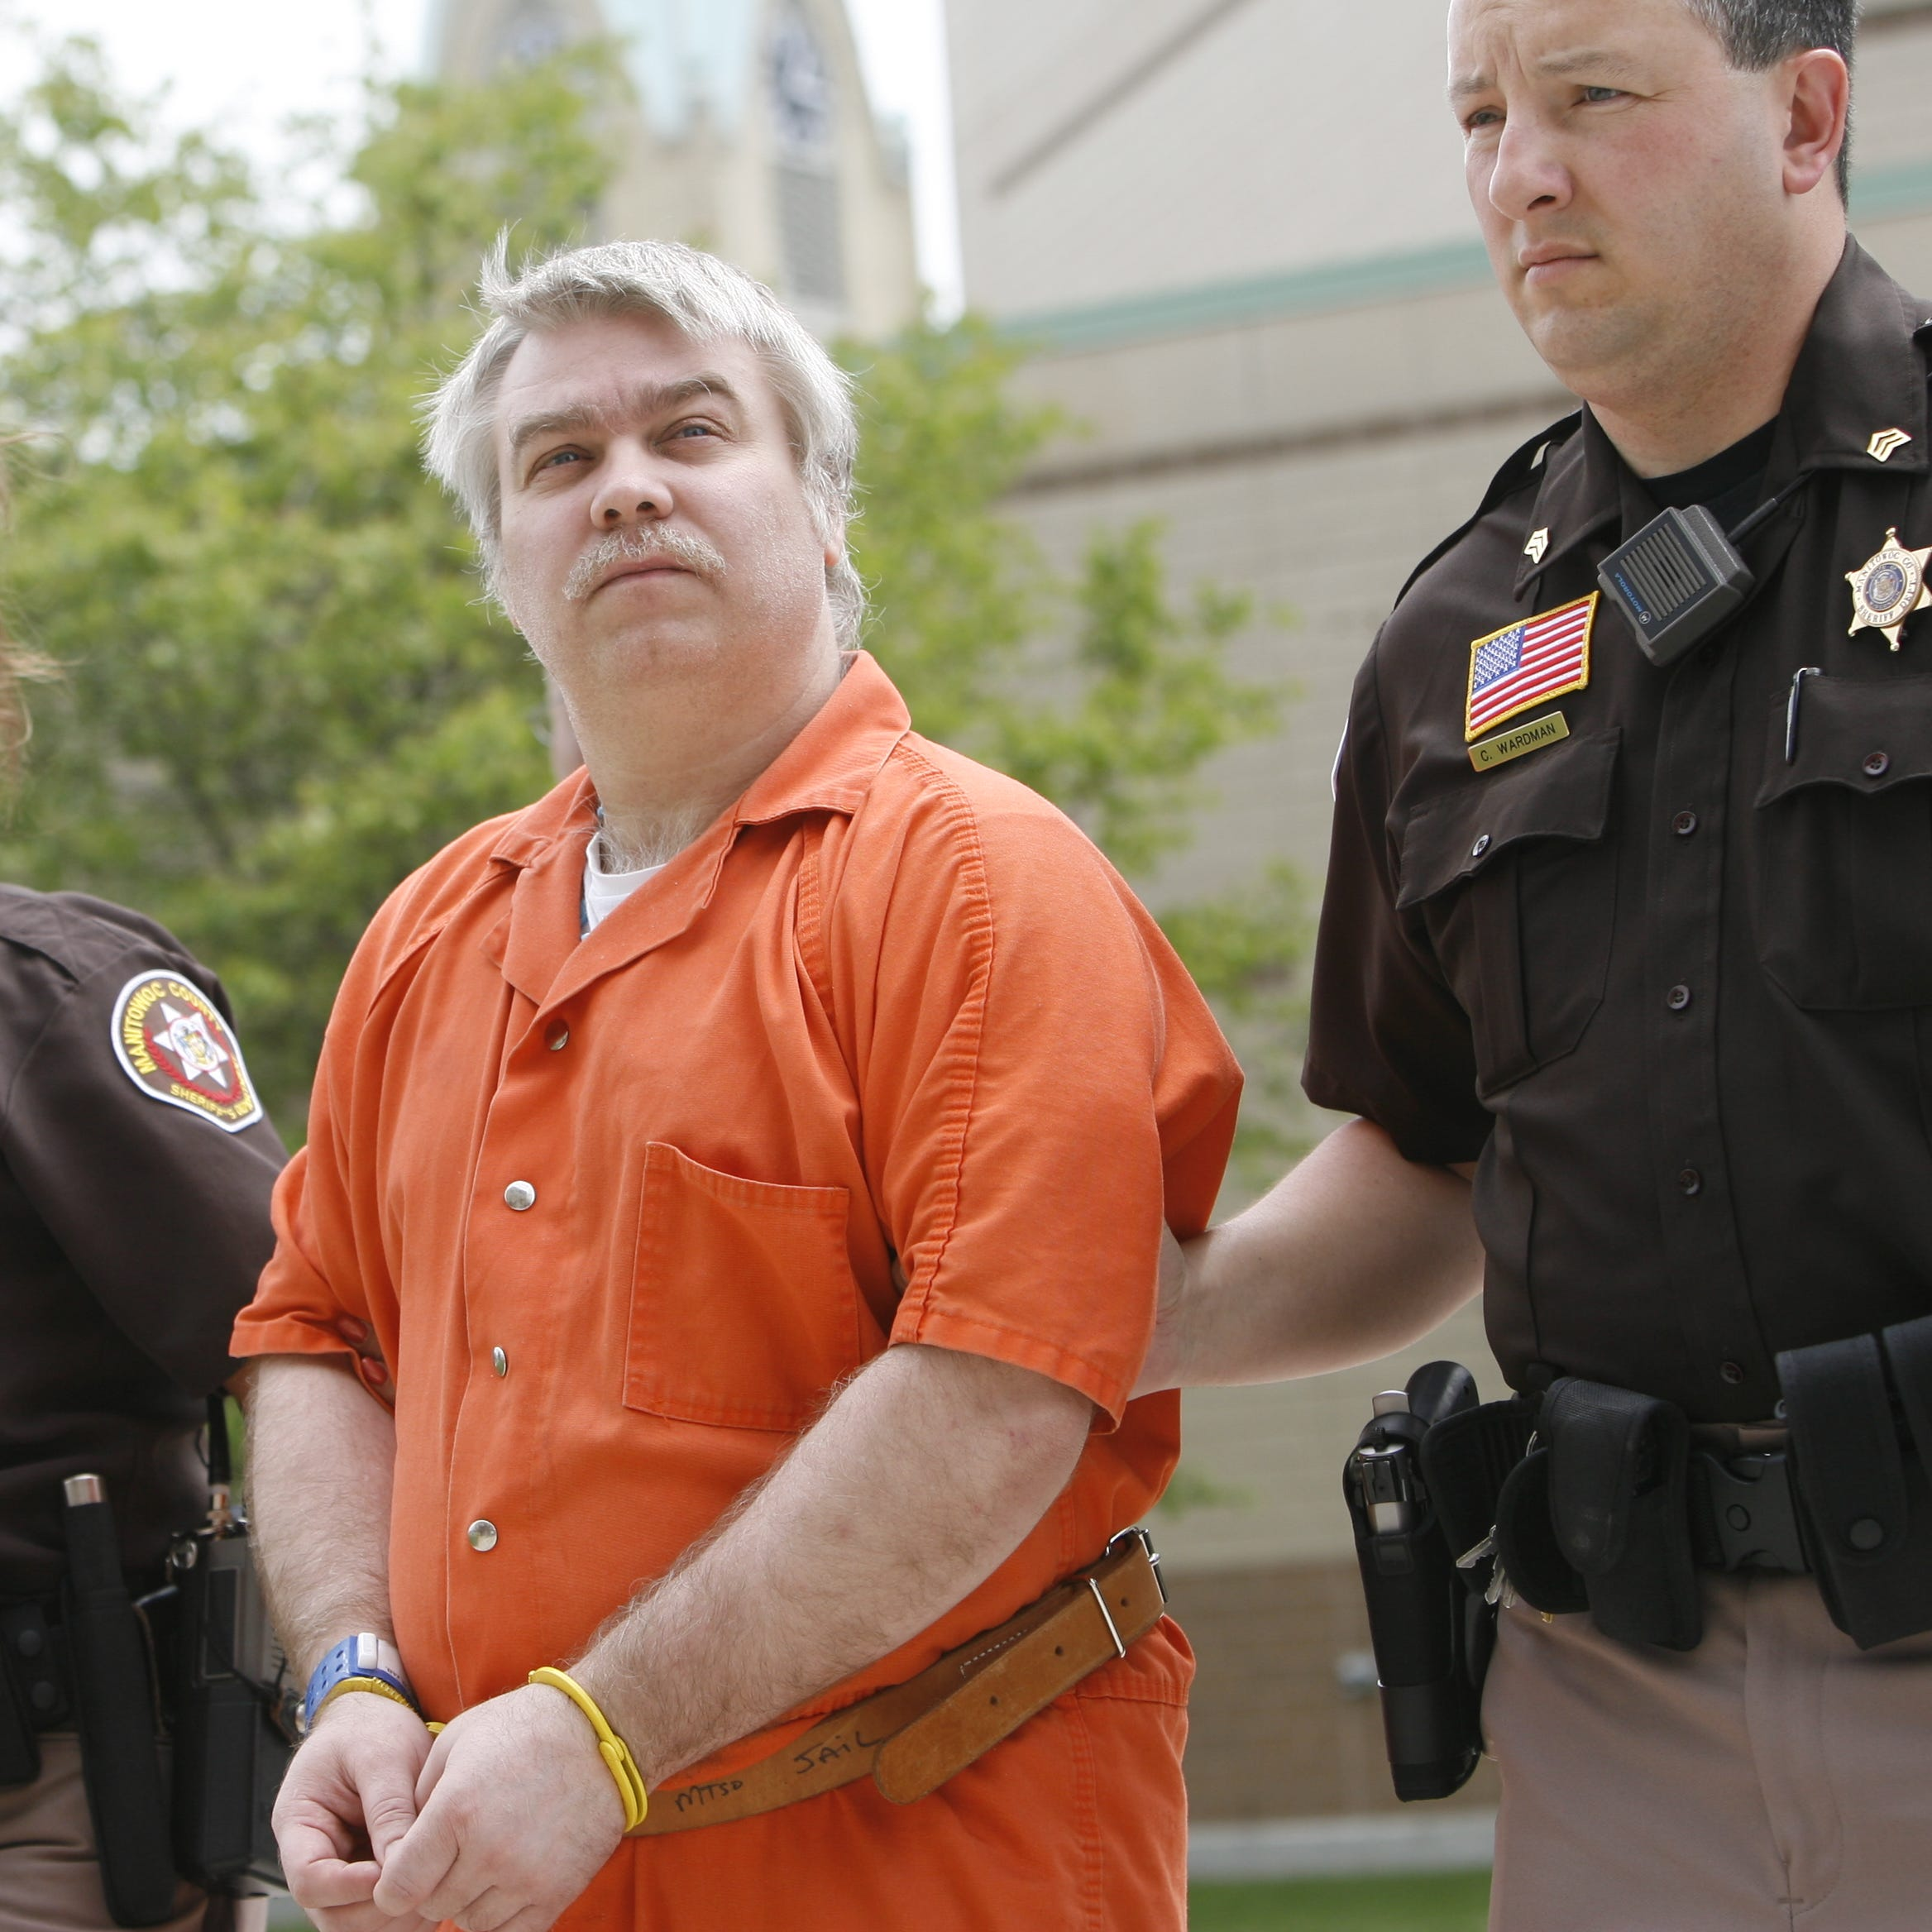 Wisconsin DOJ: It's time for Steven Avery's appeal to move ahead after 'perpetual' delays